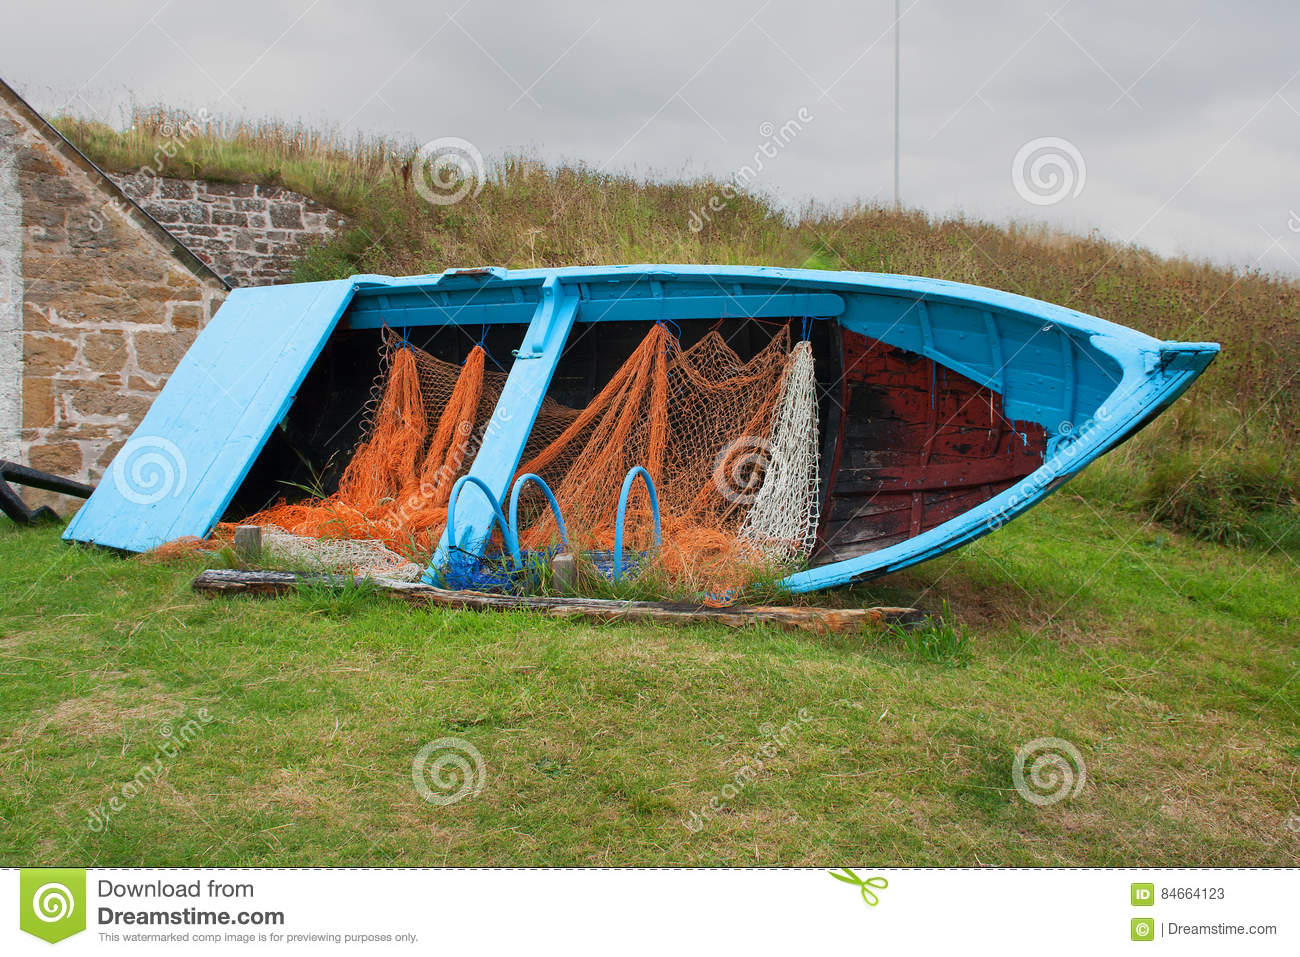 Old disused timber built fishing boat with nets and lobster pots on display